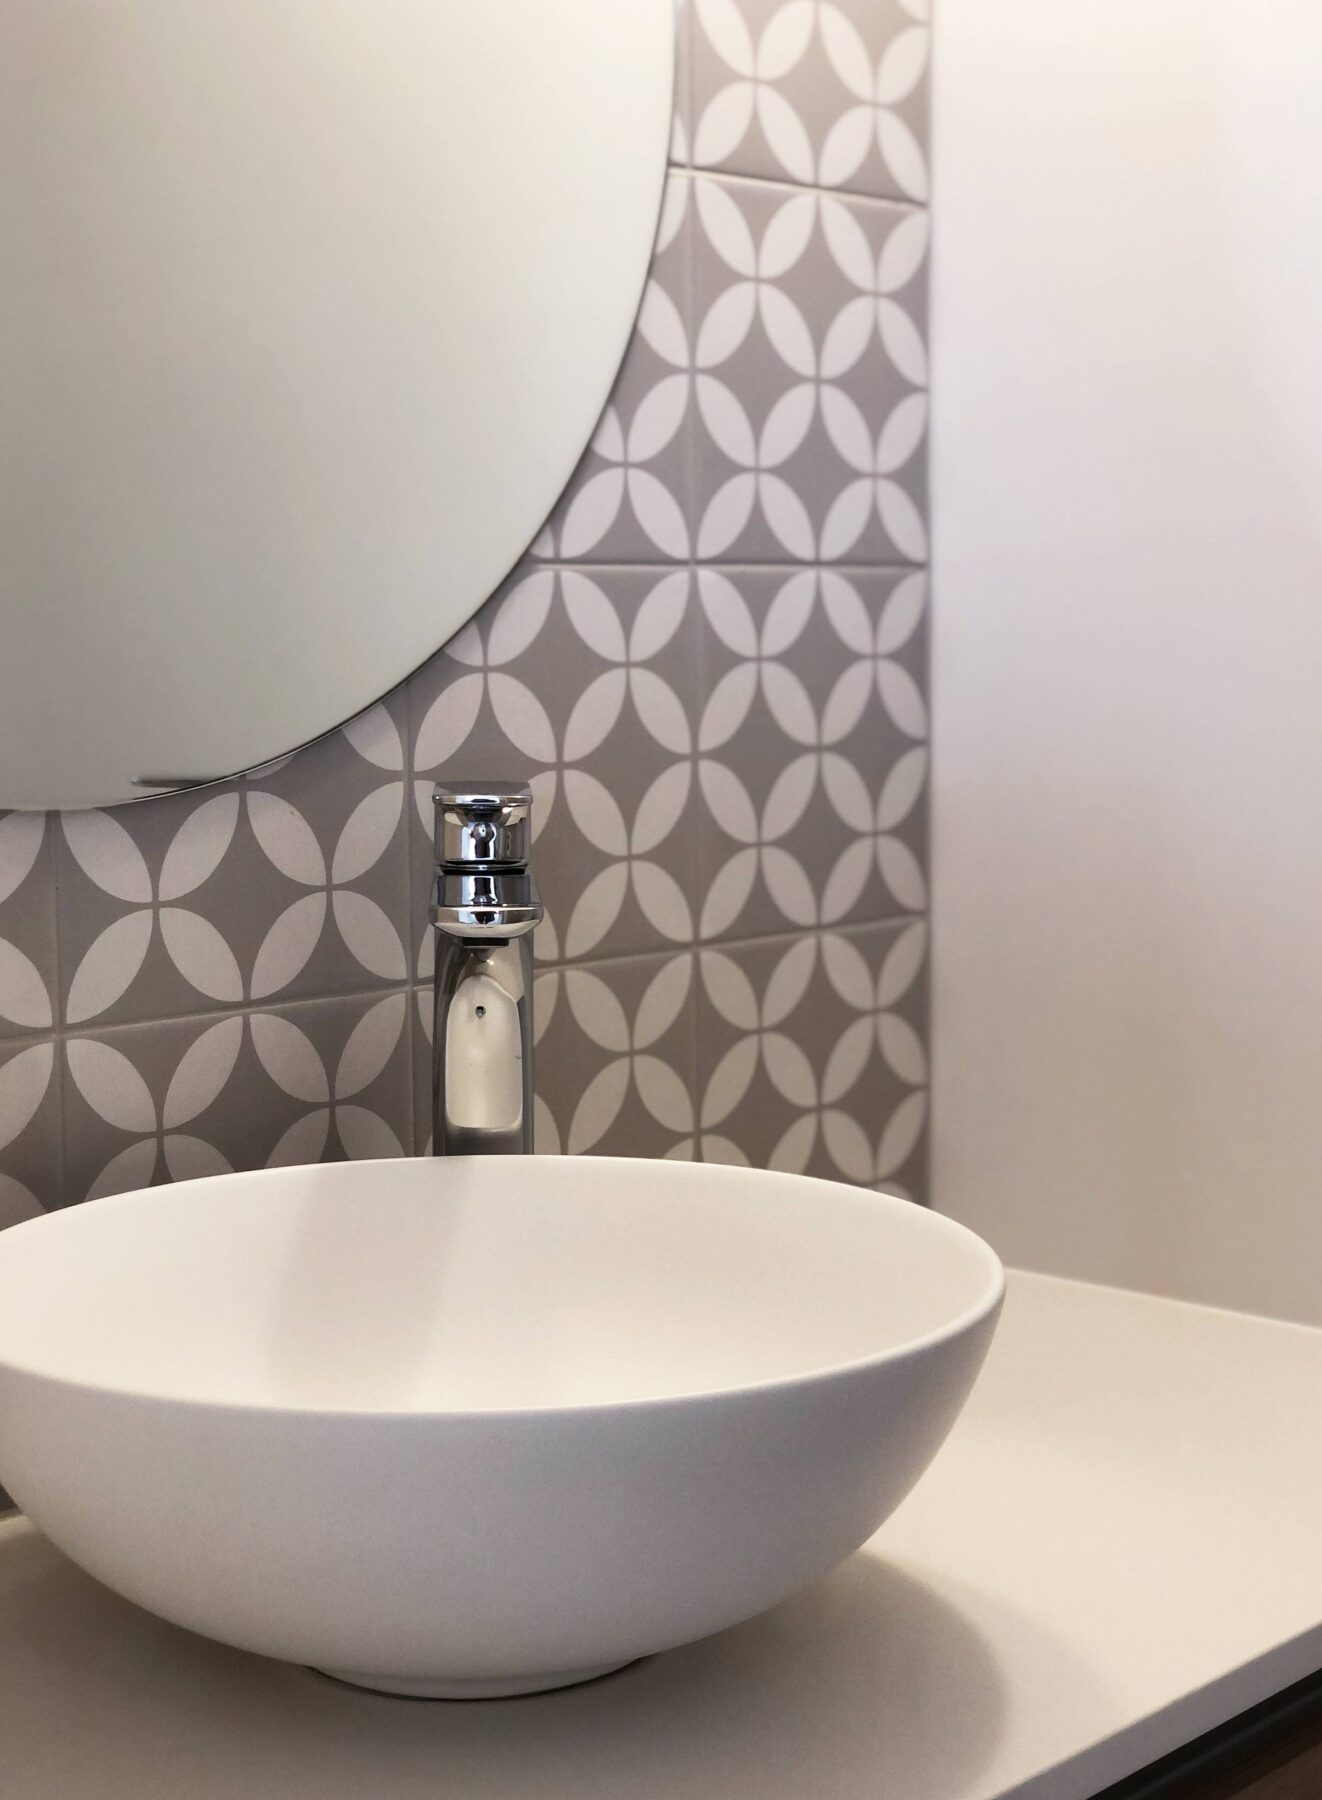 modern clean bathroom vanity design with geometric wall tiles and round surface mount basin